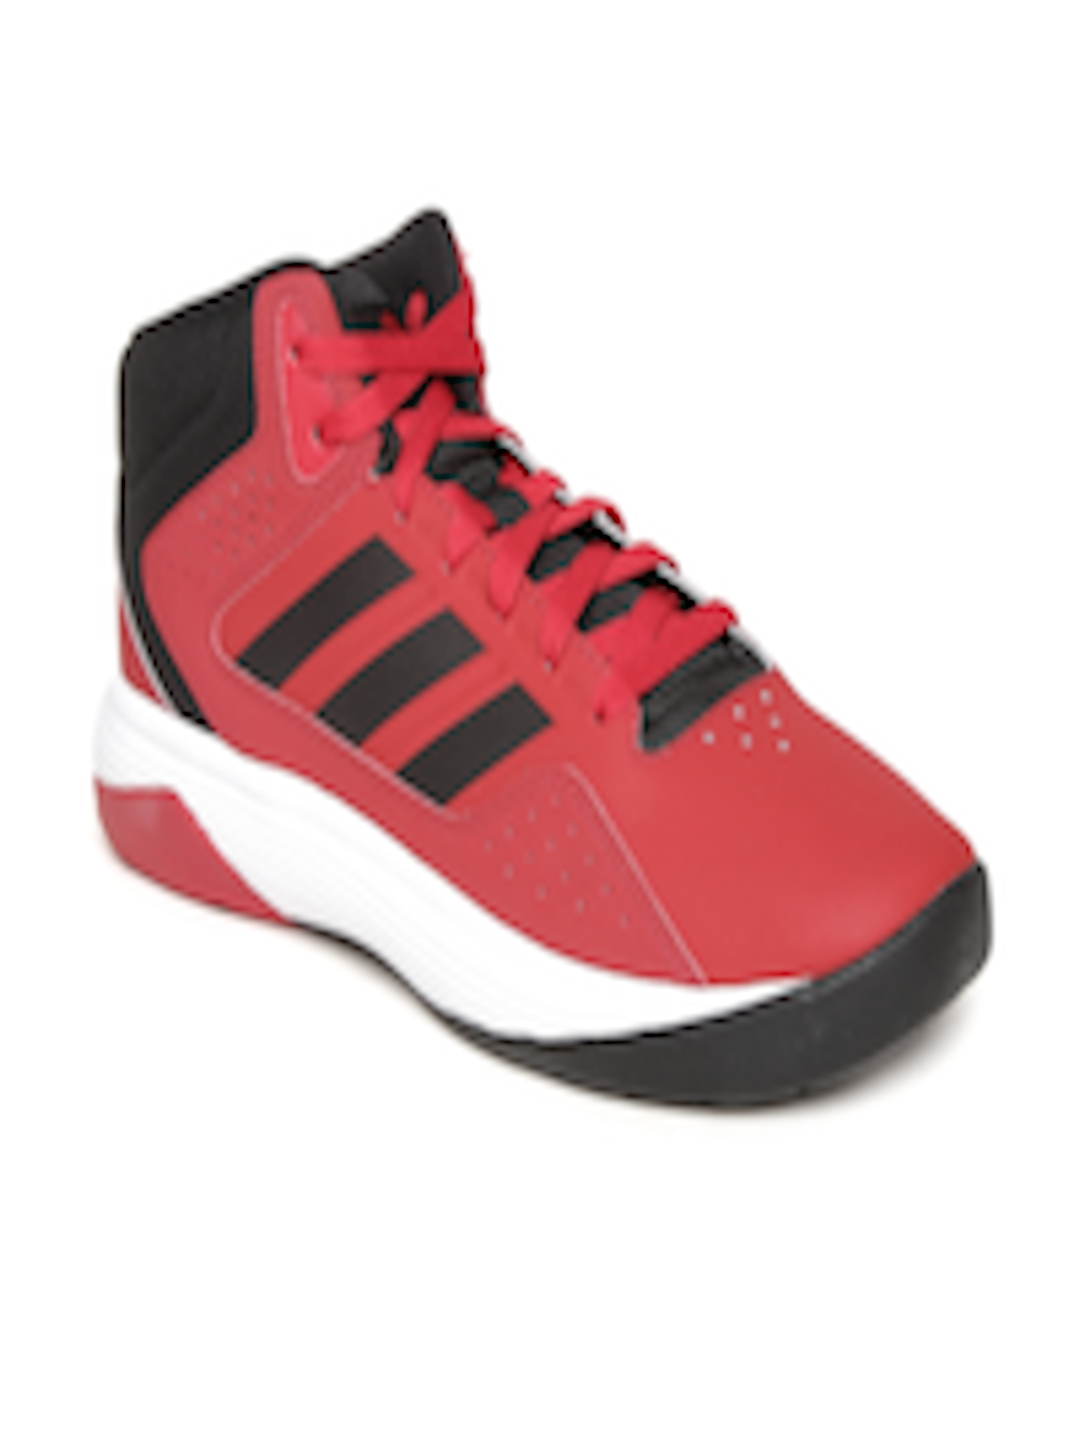 77a888e3b52 Buy ADIDAS NEO Men Red Cloudfoam Ilation Mid Top Basketball Shoes - Sports  Shoes for Men 1639614